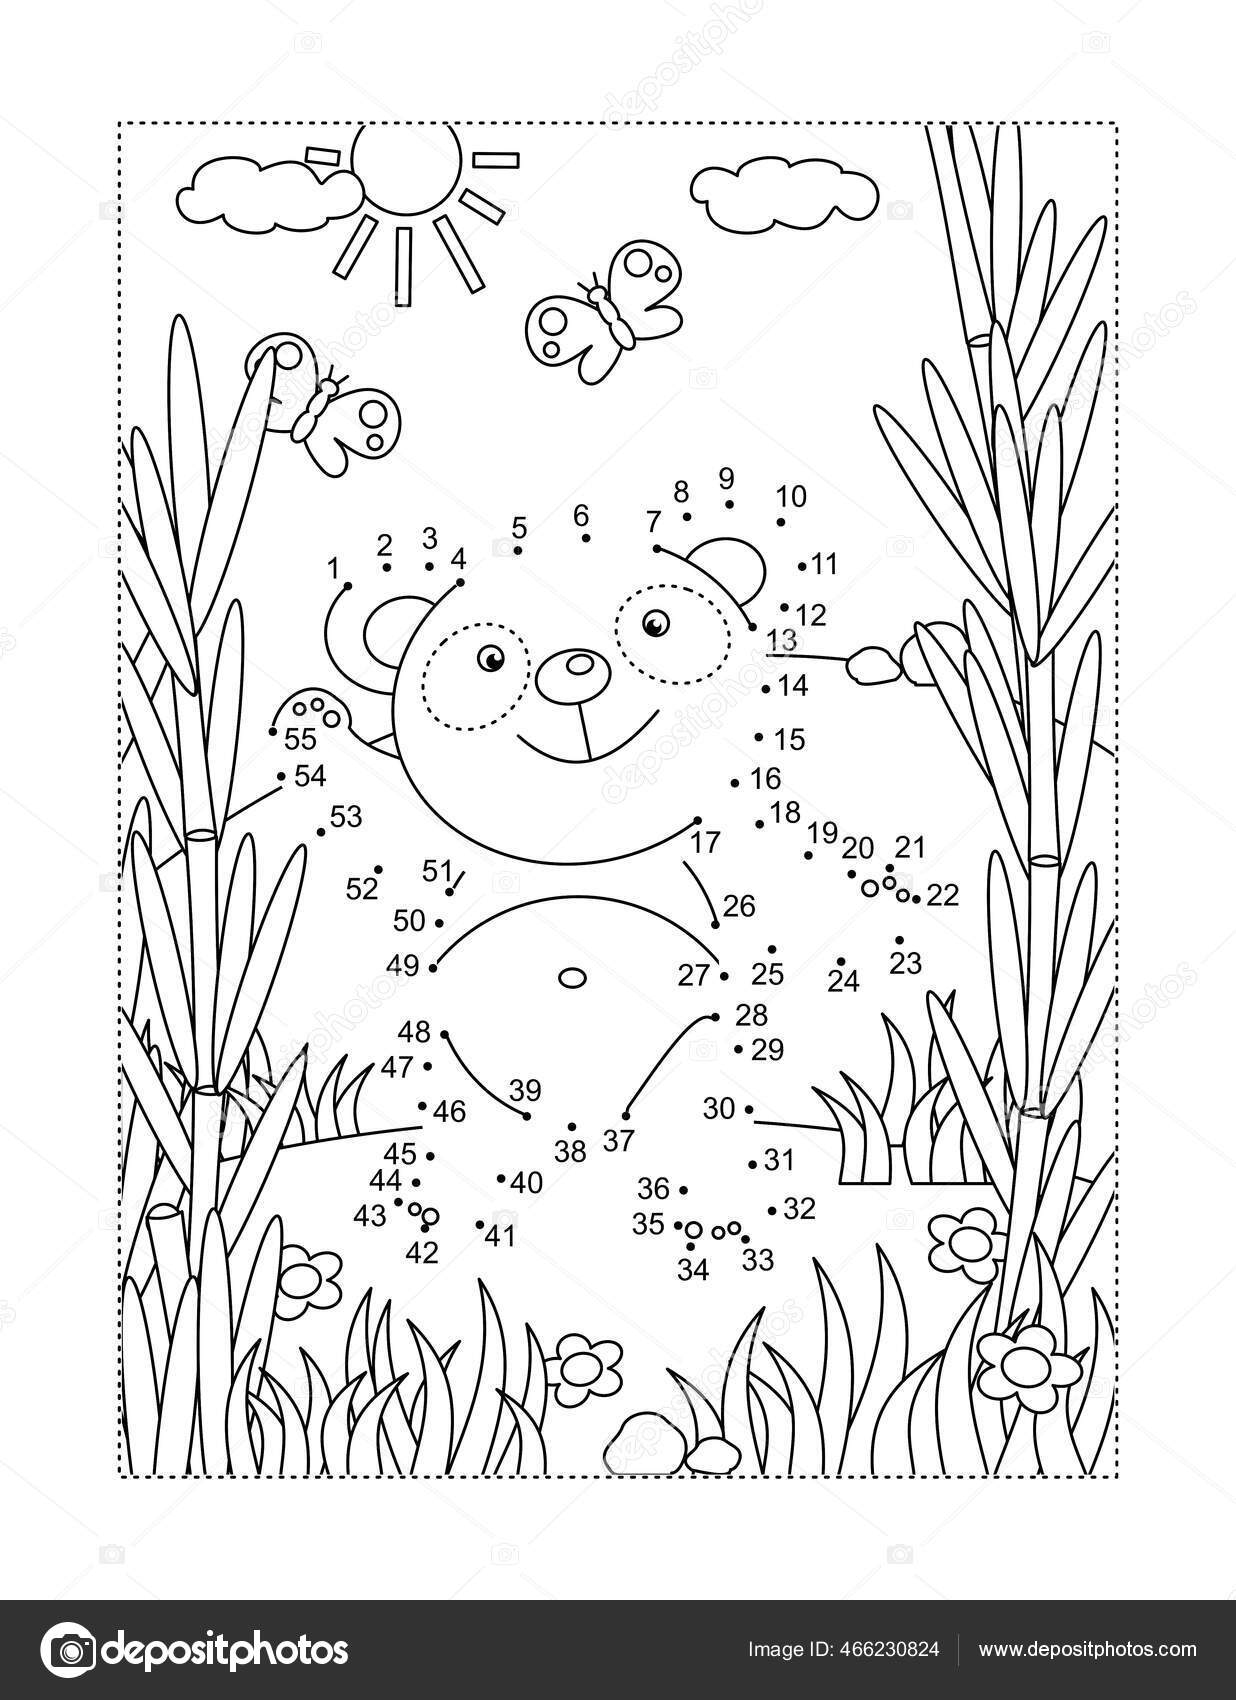 Printable What comes after 1 to 50 worksheet in PDF. After numbers 1 to 50.